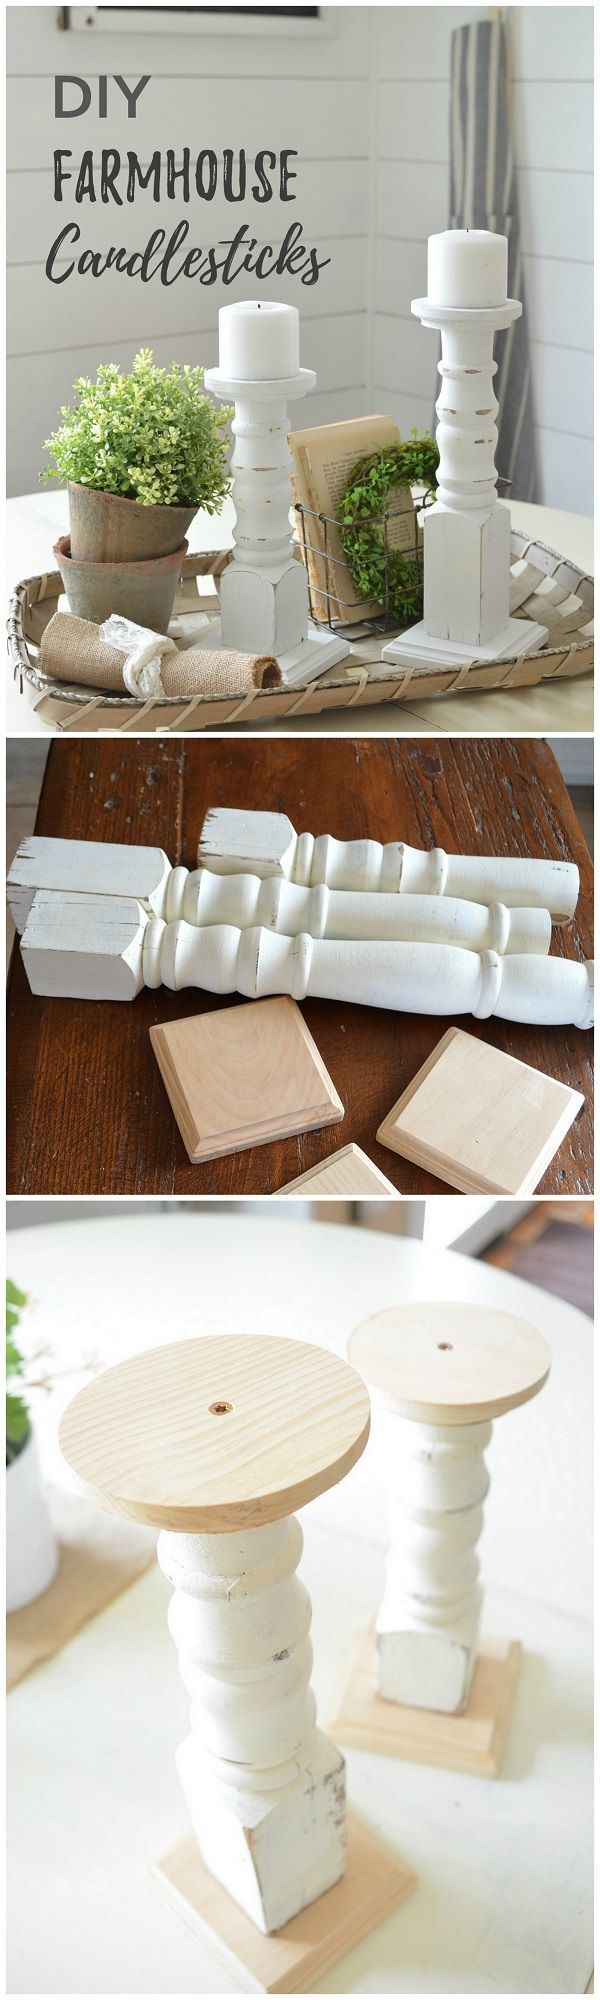 Trying these DIY modern farmhouse style projects. They involve reasonably priced materials so you don't have to worry about the budget. They are also fairly easy to complete.